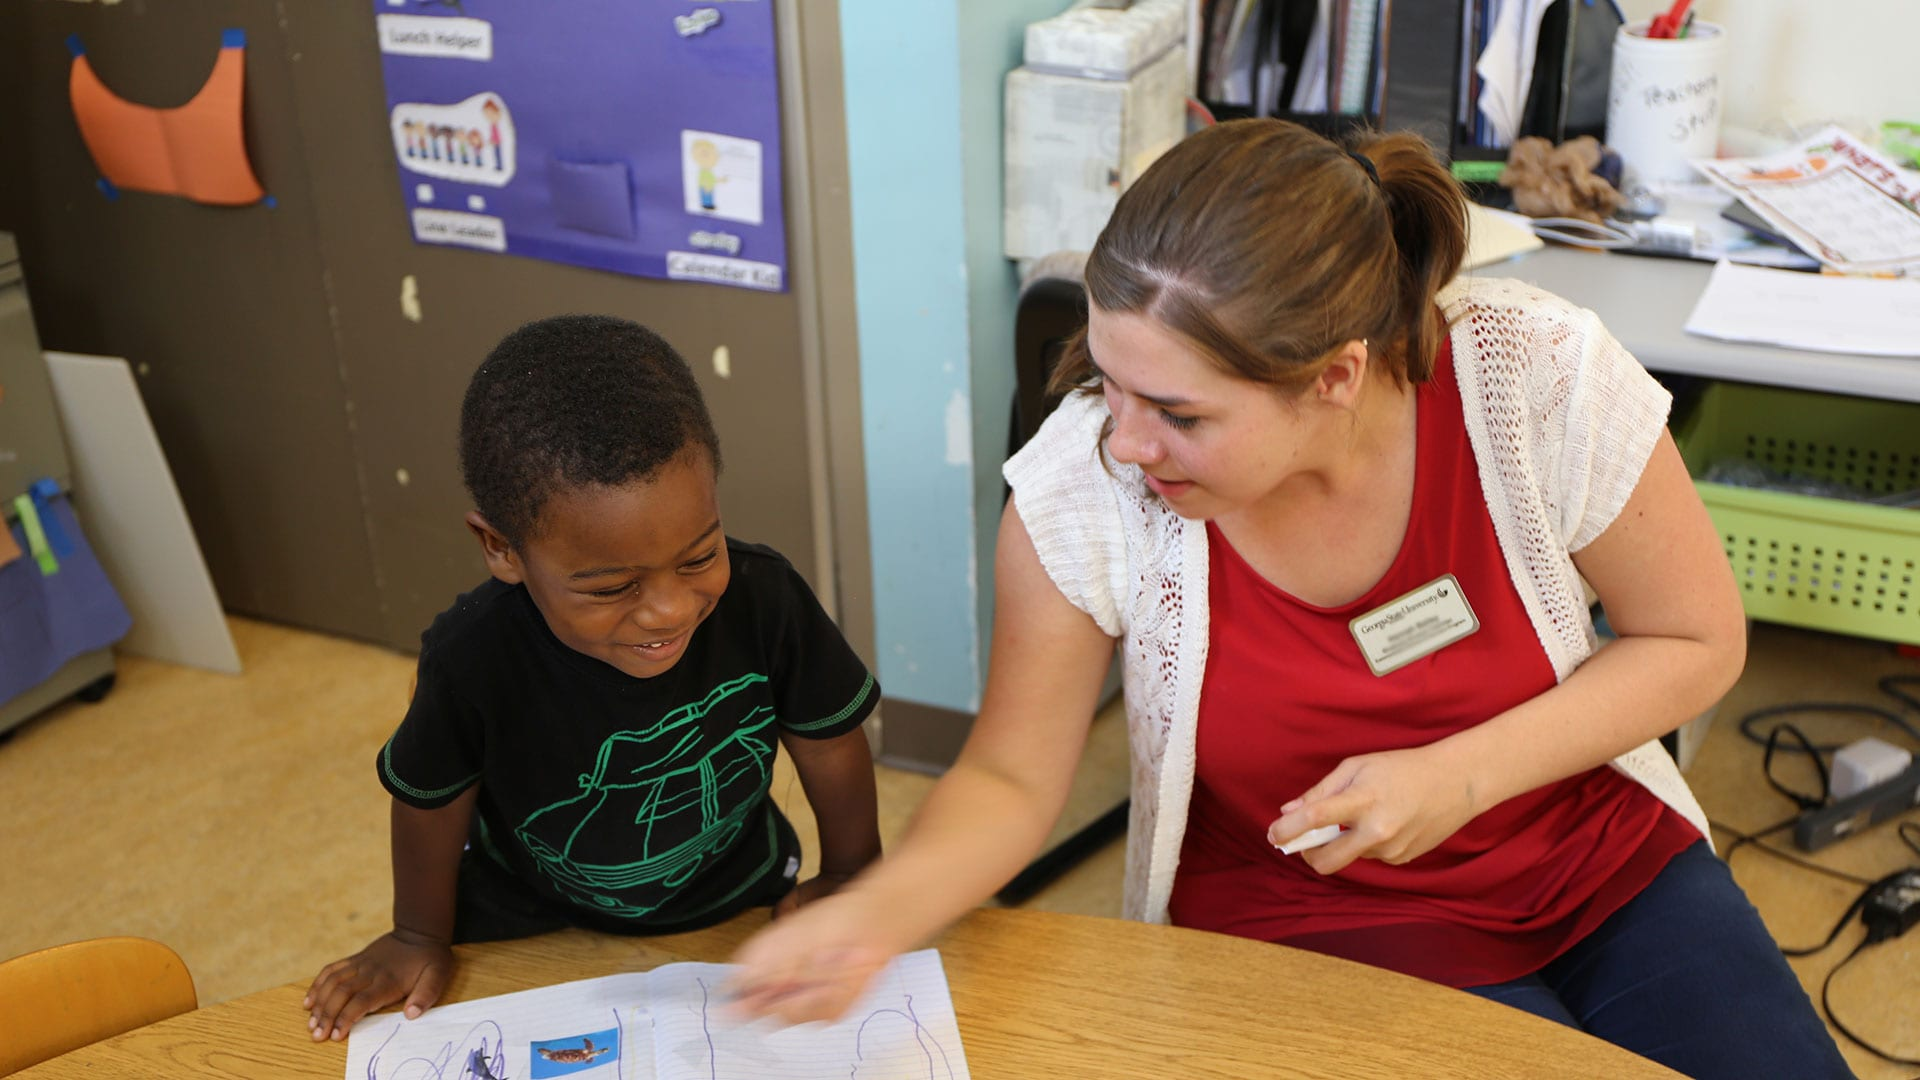 Student works with child at the Atlanta Children's Center